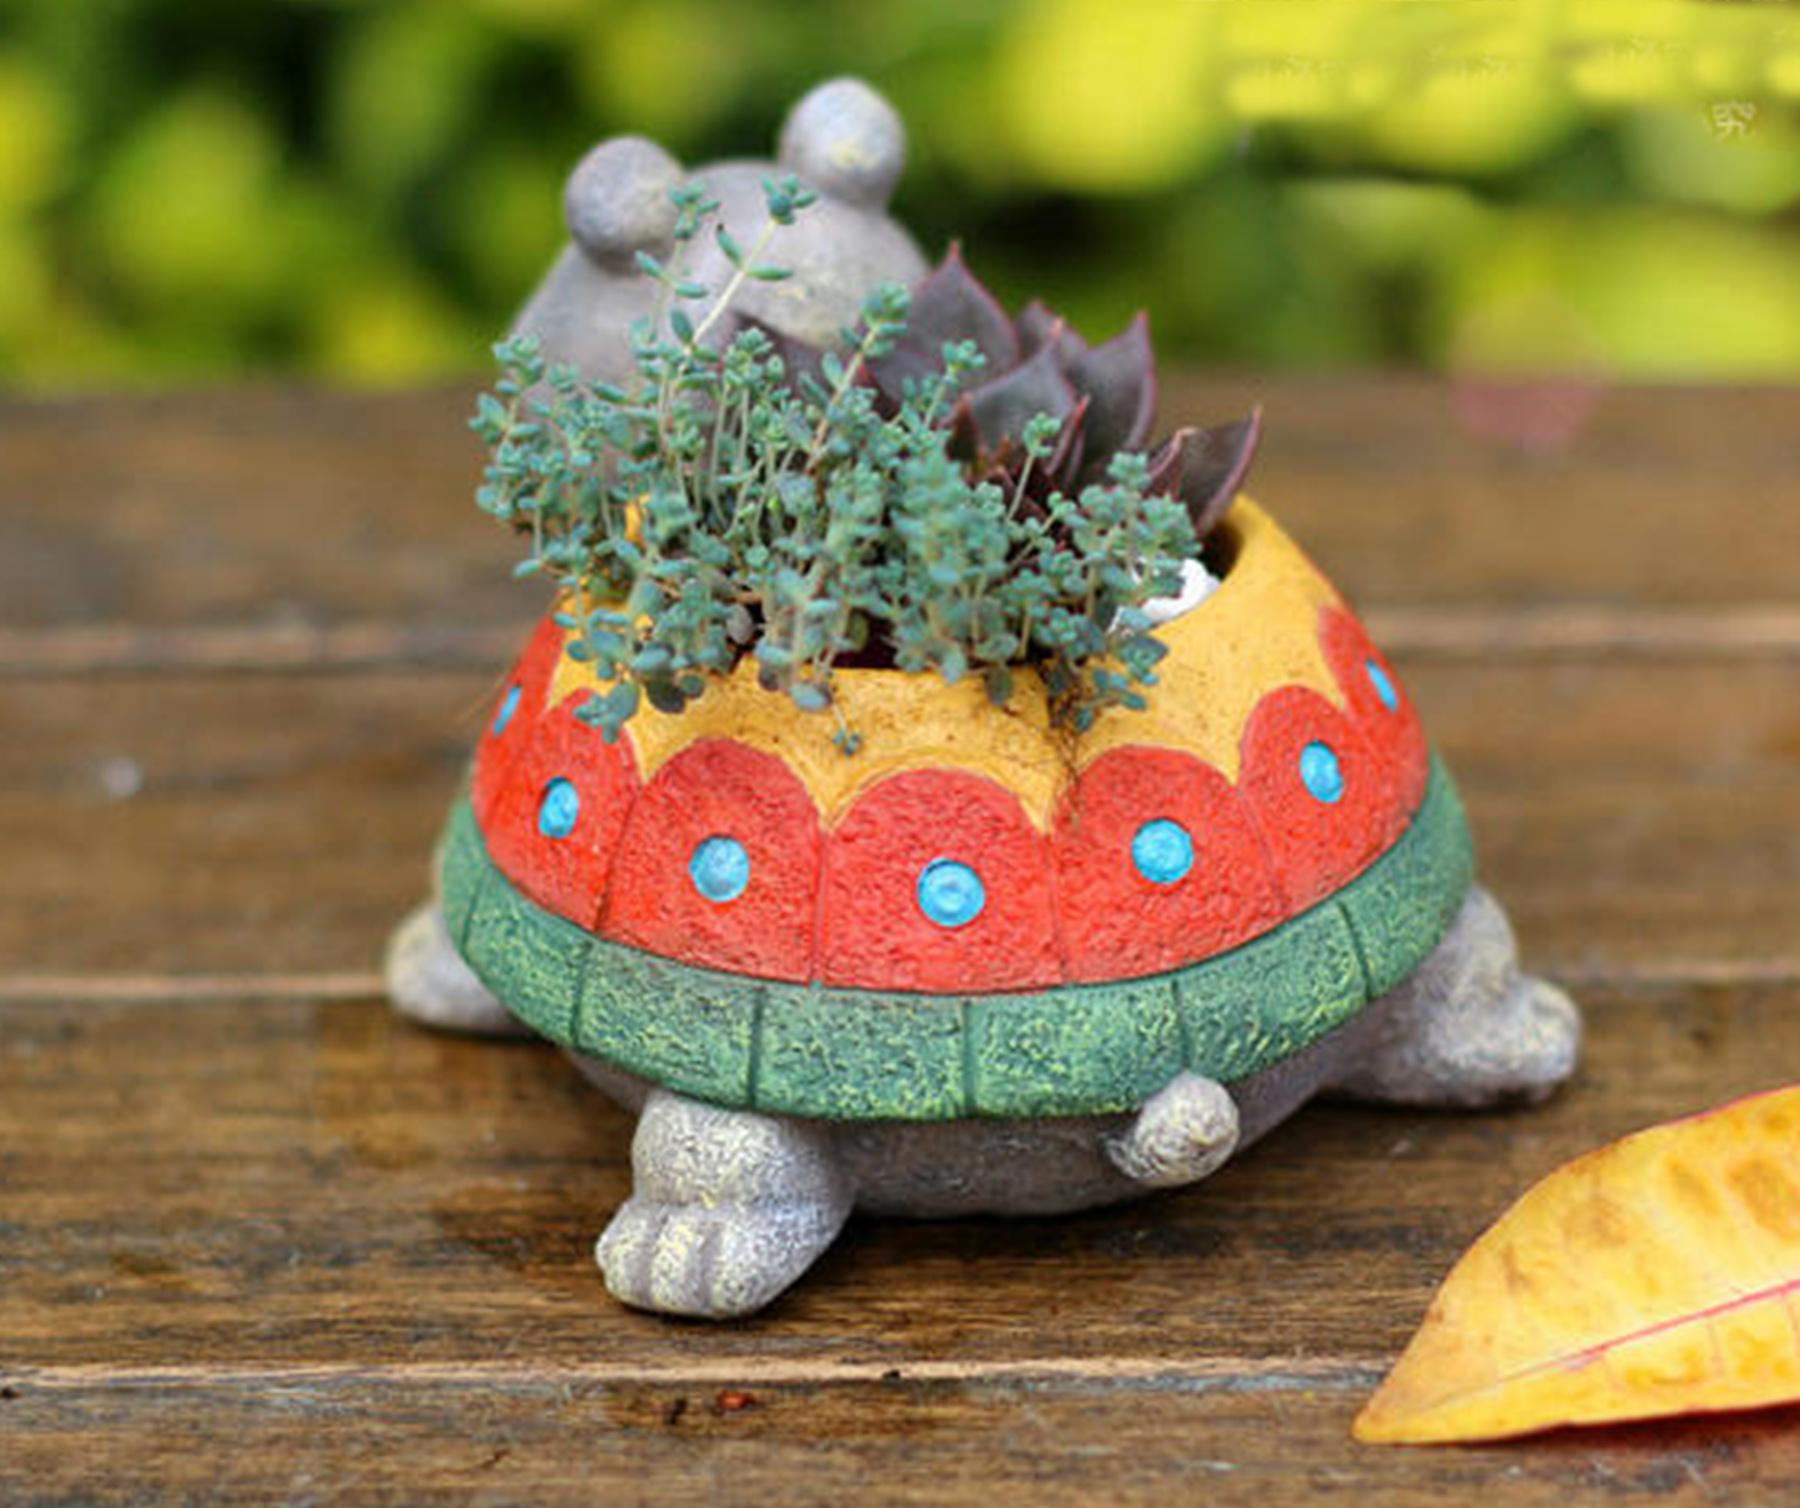 Tortoise Resin Pot Cacti Succulent Plant Flower Planter Mini Garden Design In Pots Planters From Home On Aliexpress Alibaba